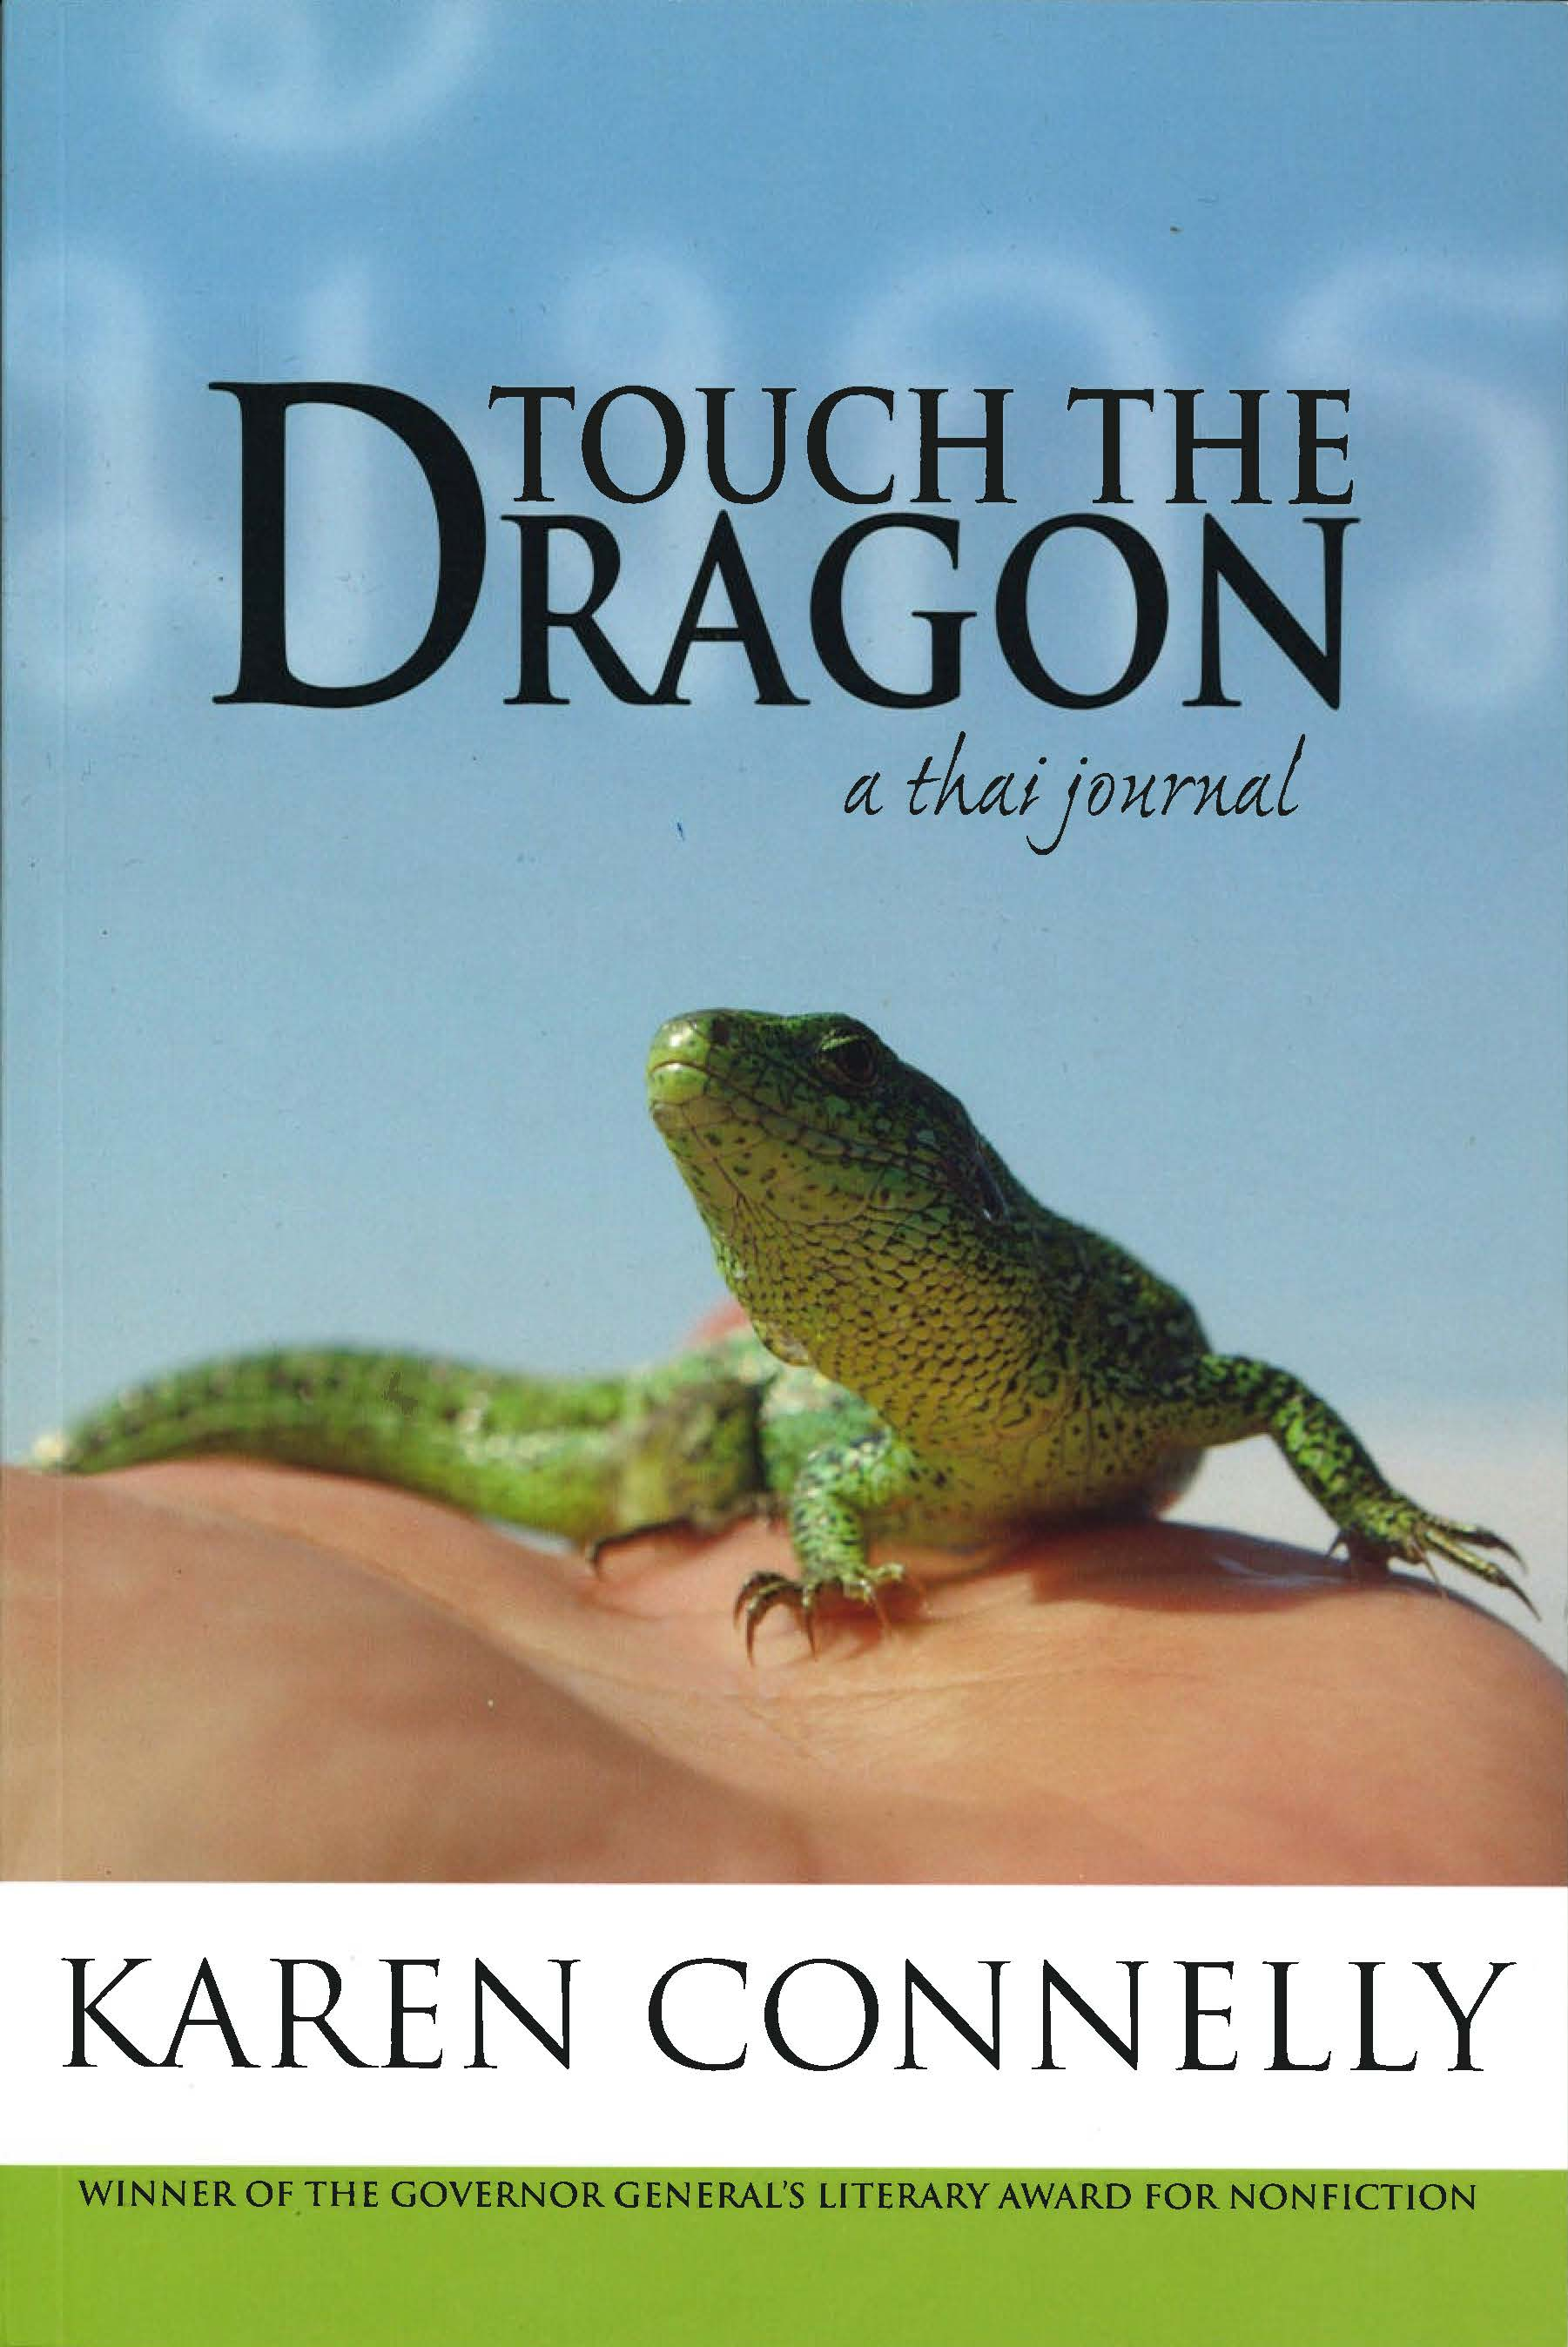 Touch the Dragon 2010 Cover.jpg